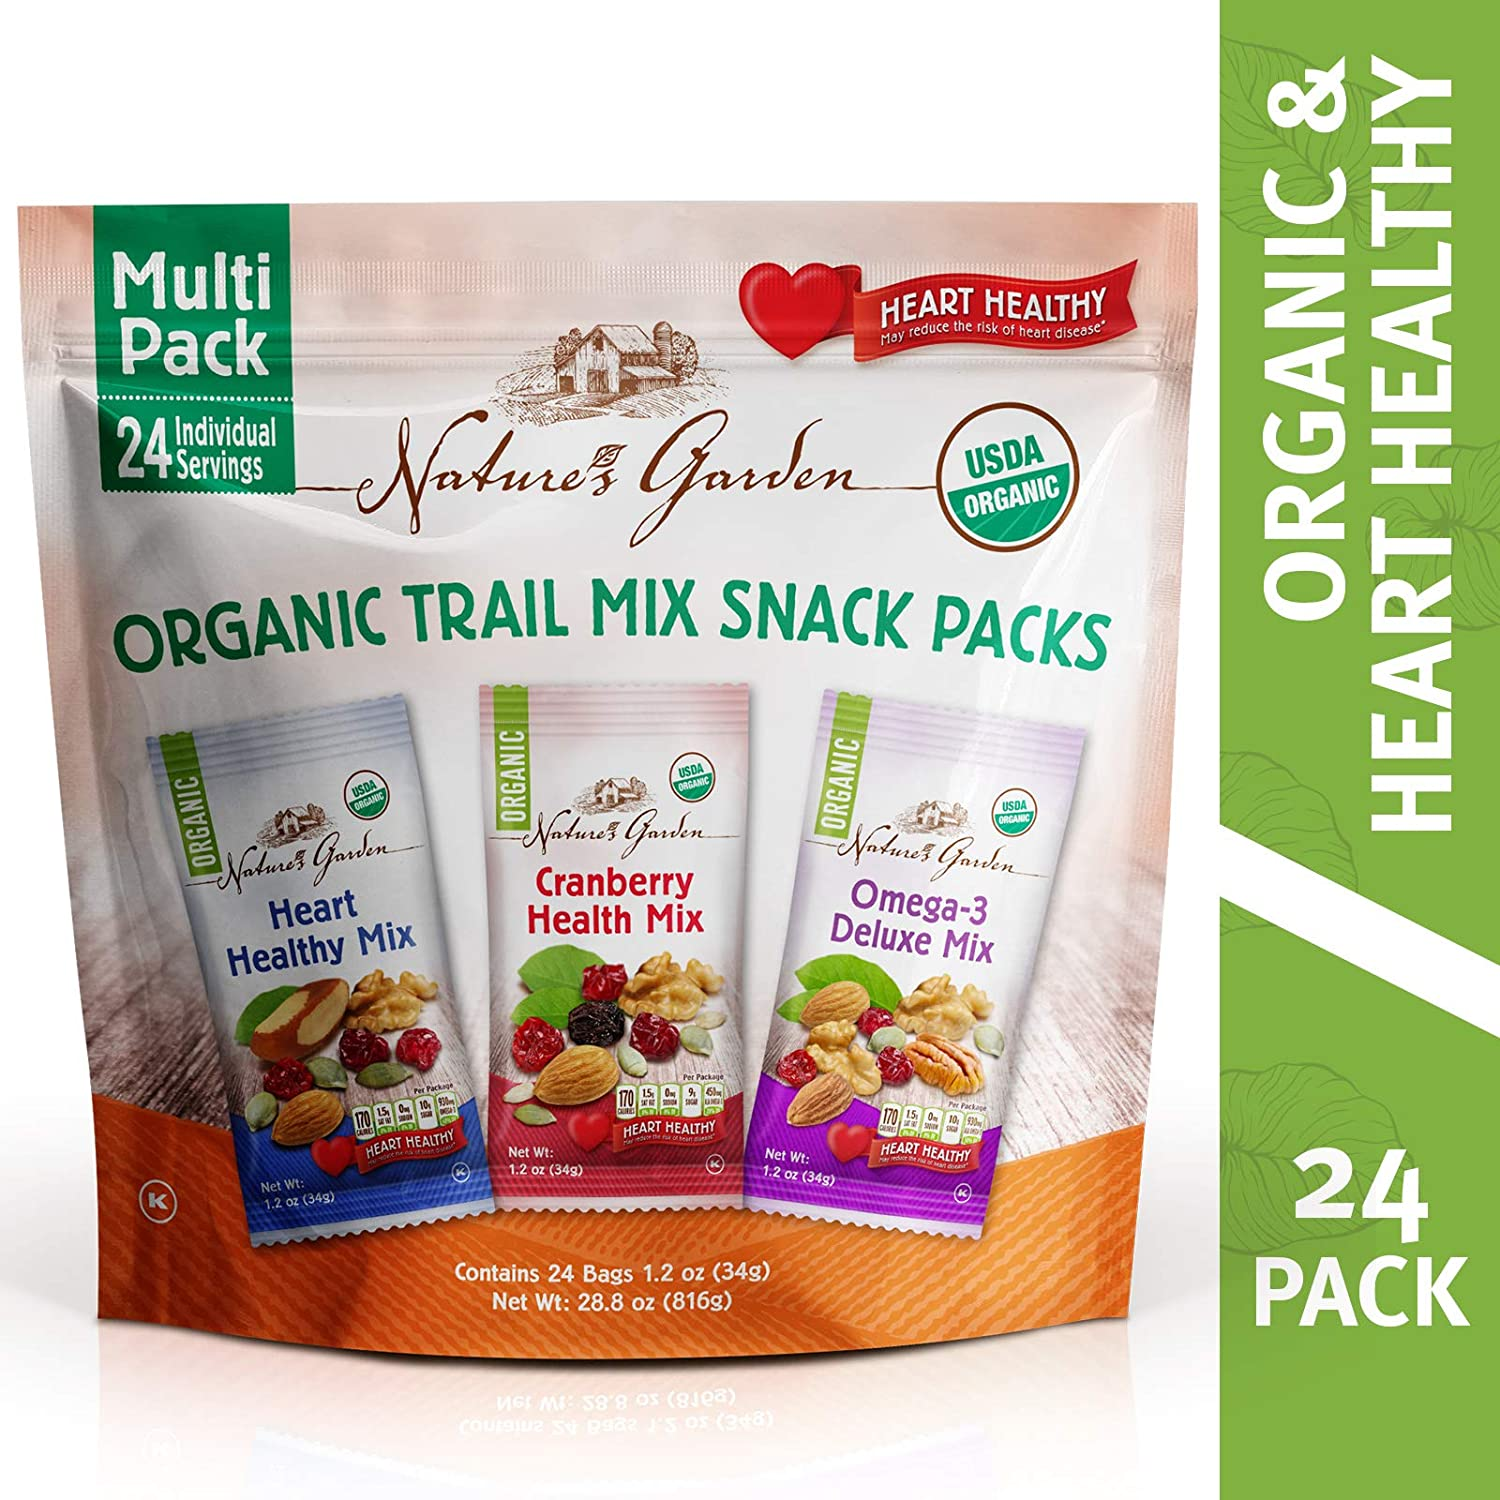 Nature's Garden Organic Trail Mix Snack Packs, Multi Pack 1.2 oz - Pack of 24 (Total 28.8 oz)